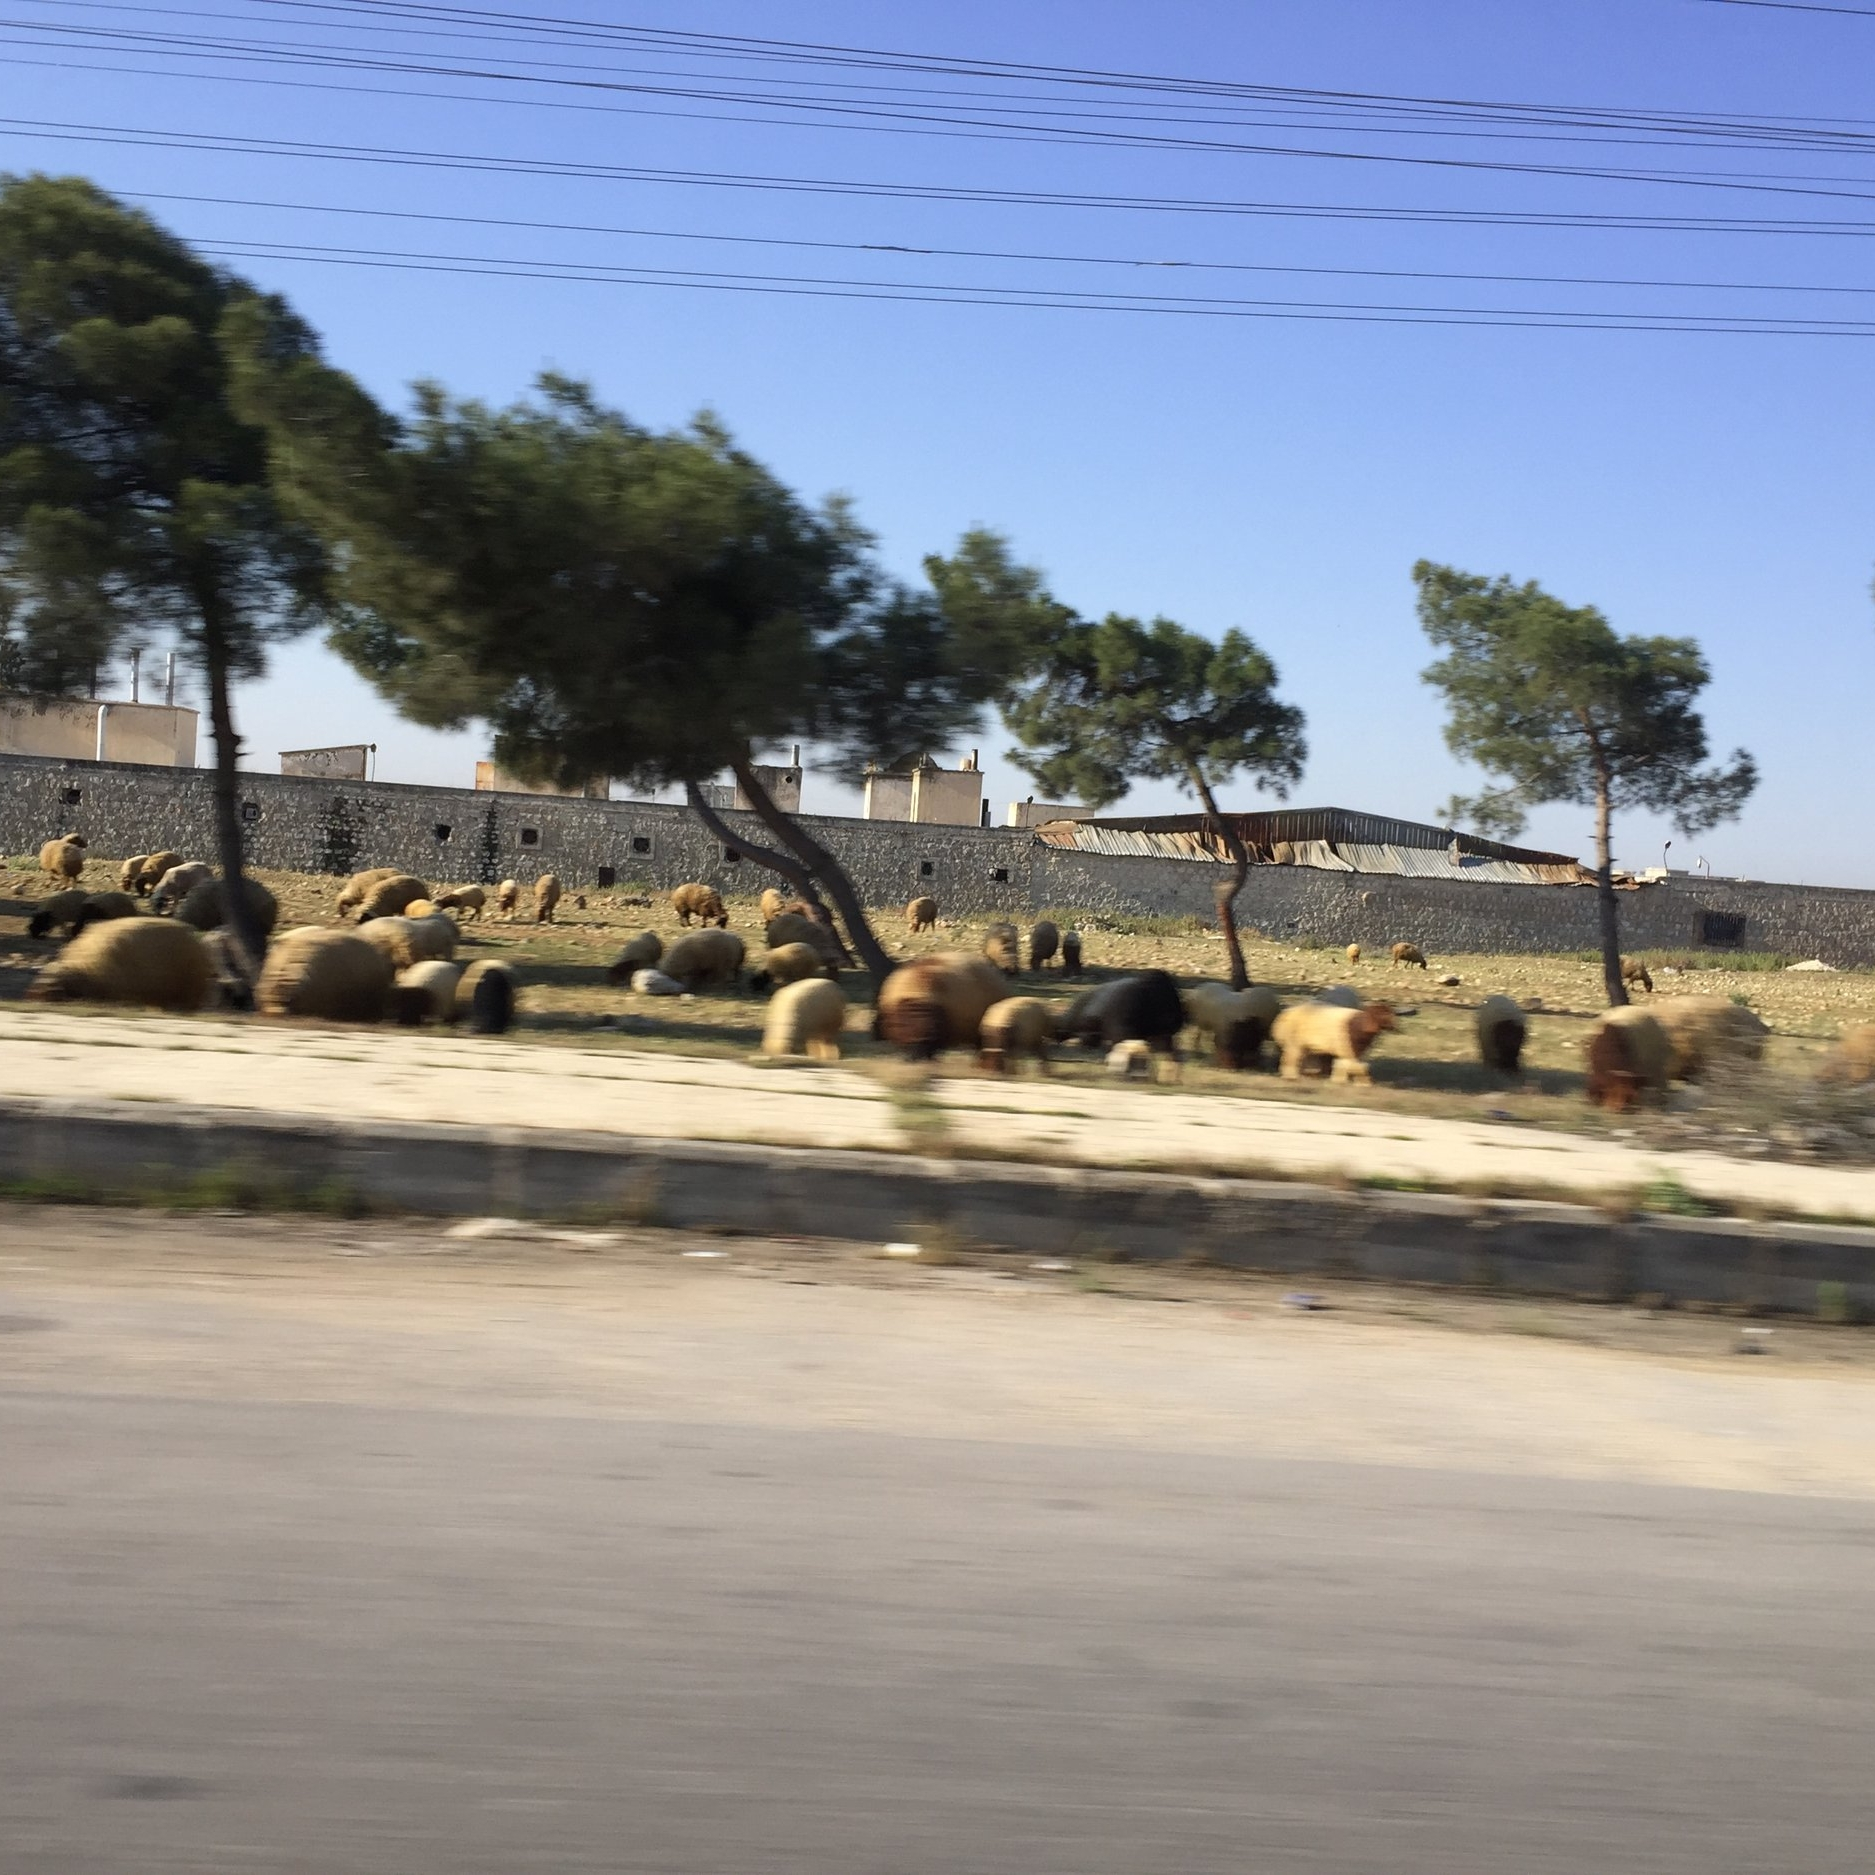 Flock of sheep on the road out of Aleppo